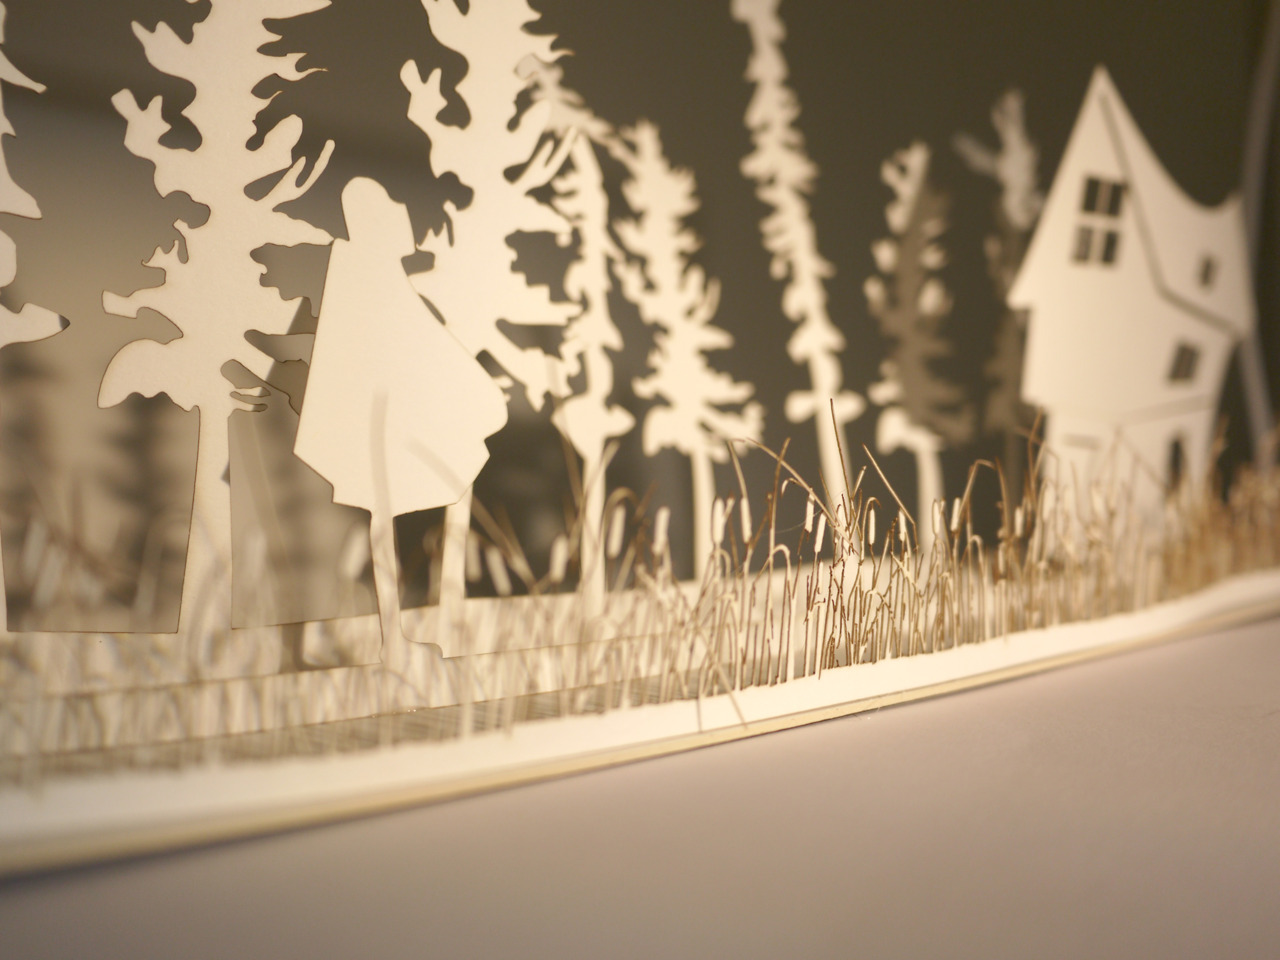 Red riding hood. Playing with paper, how the scene will work, thinking of how/where/what arduina to add….